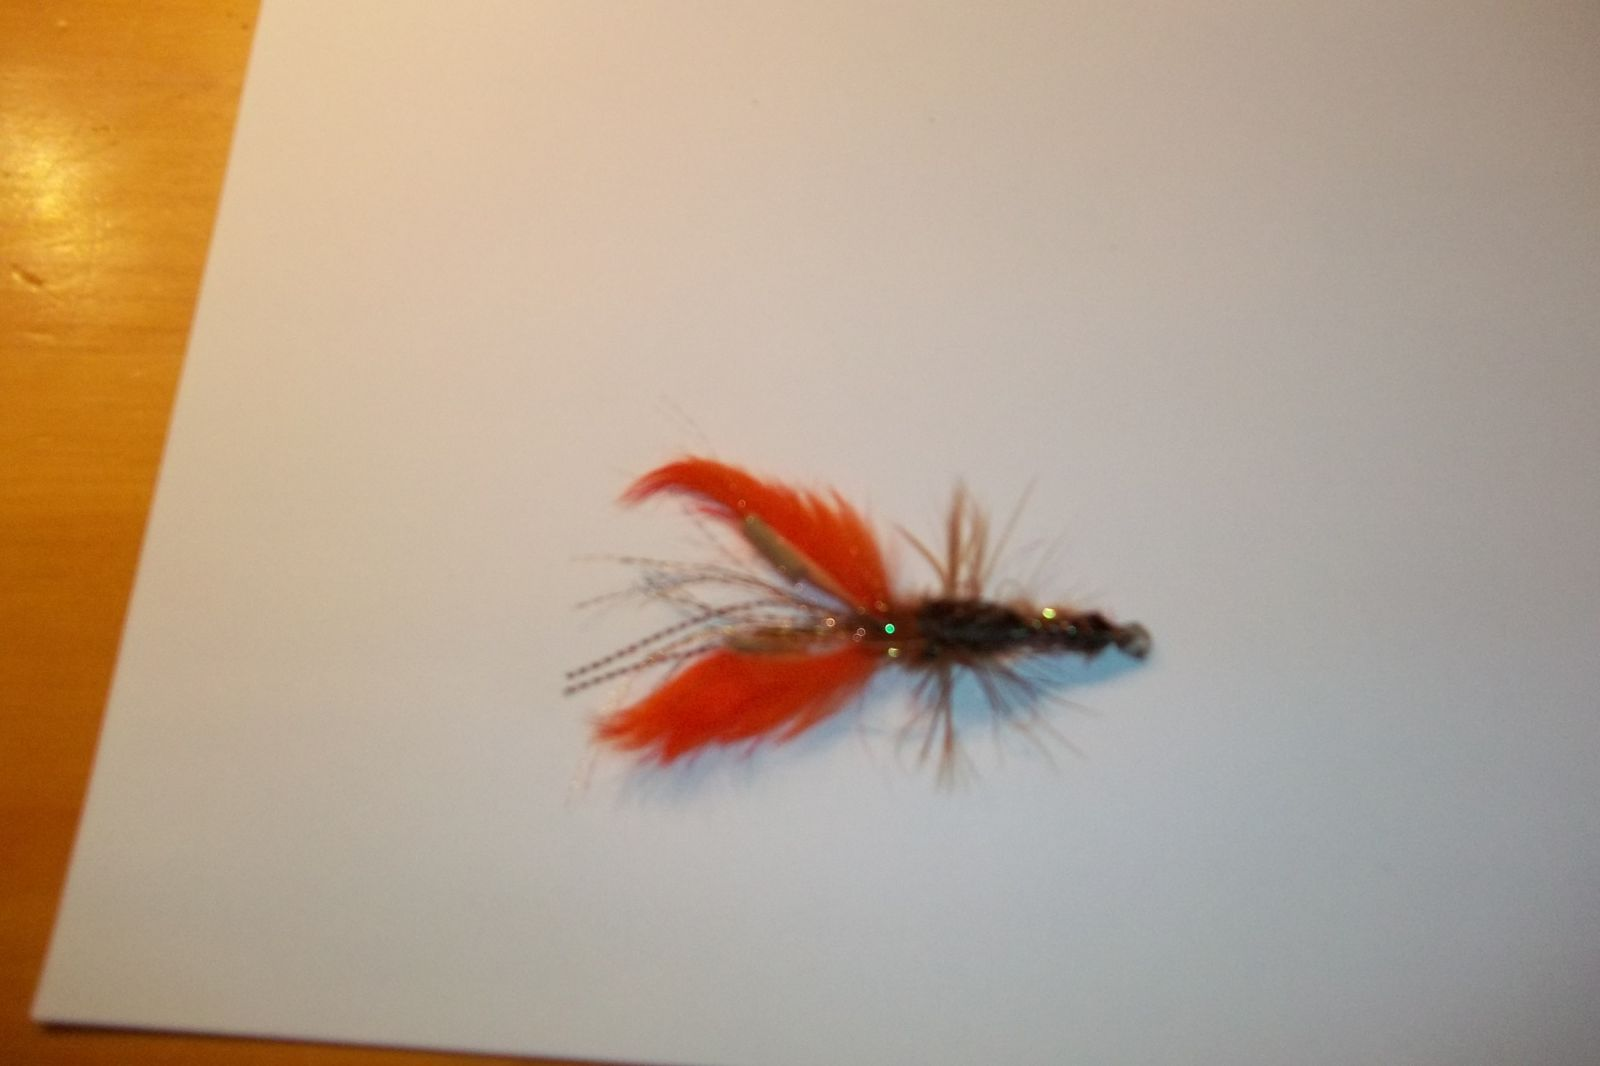 193 0172 articulated craw